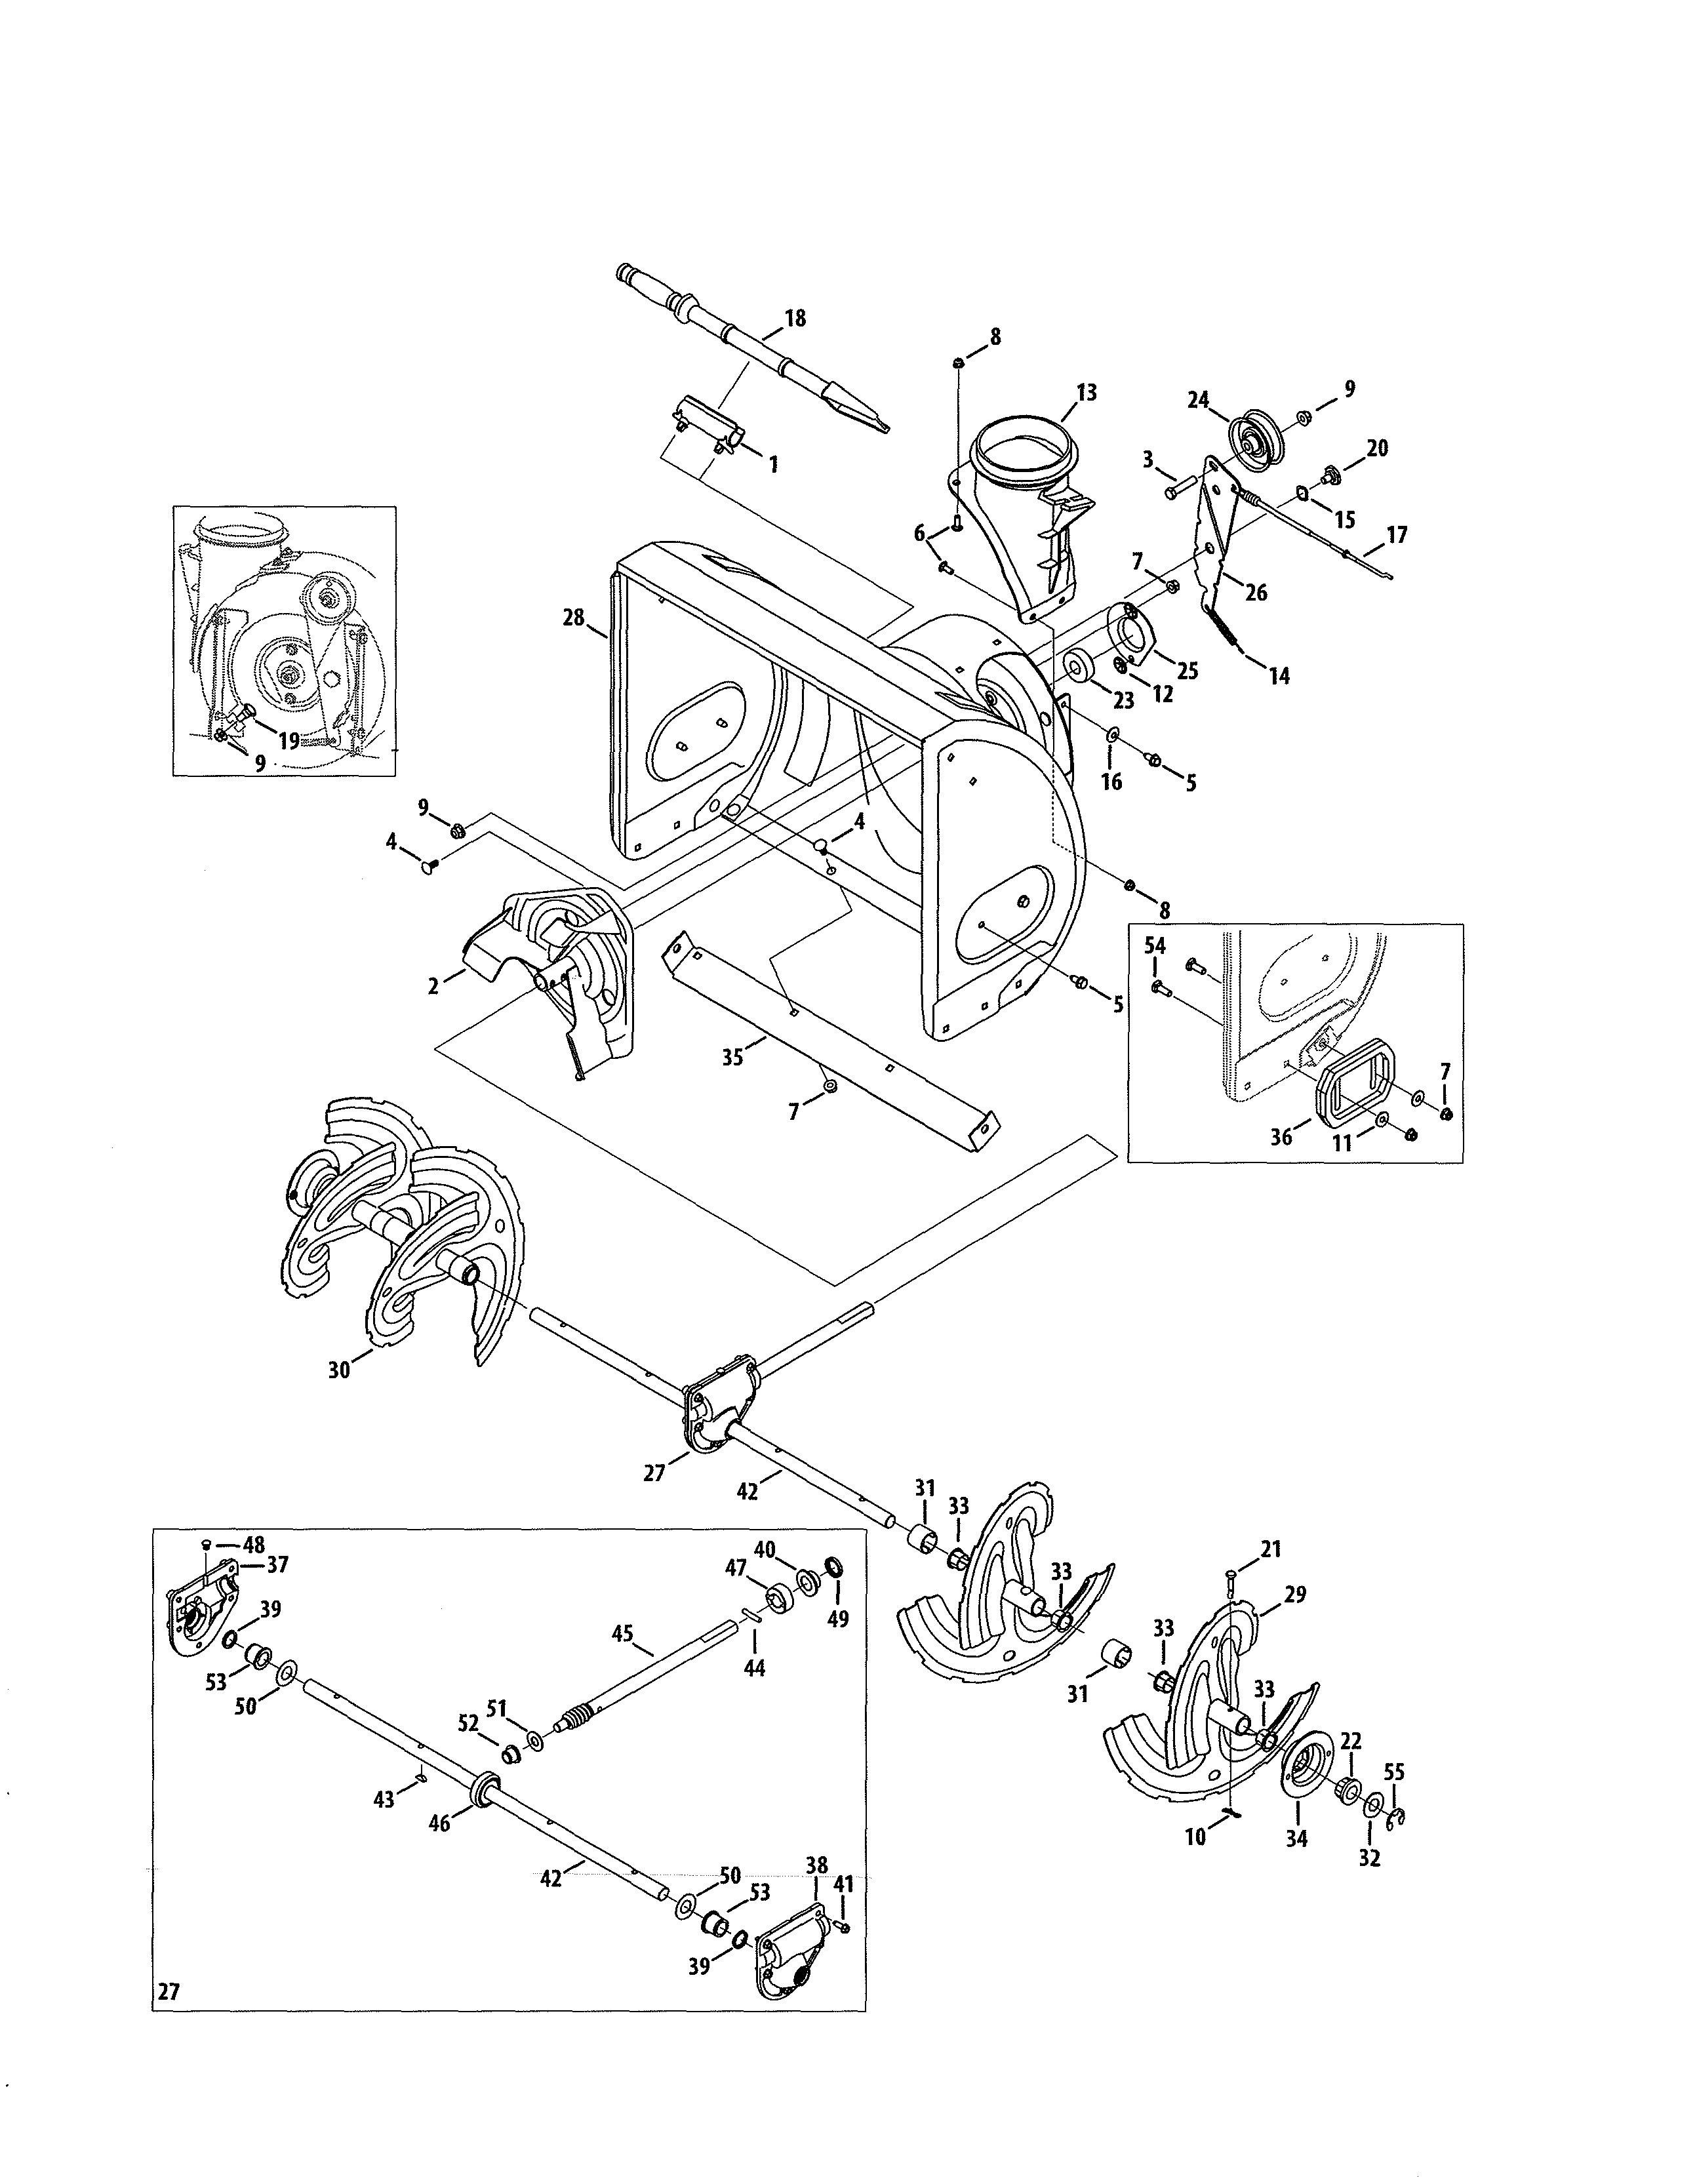 Auto parts diagram manual get craftsman parts and free manual for model 247 gas snow